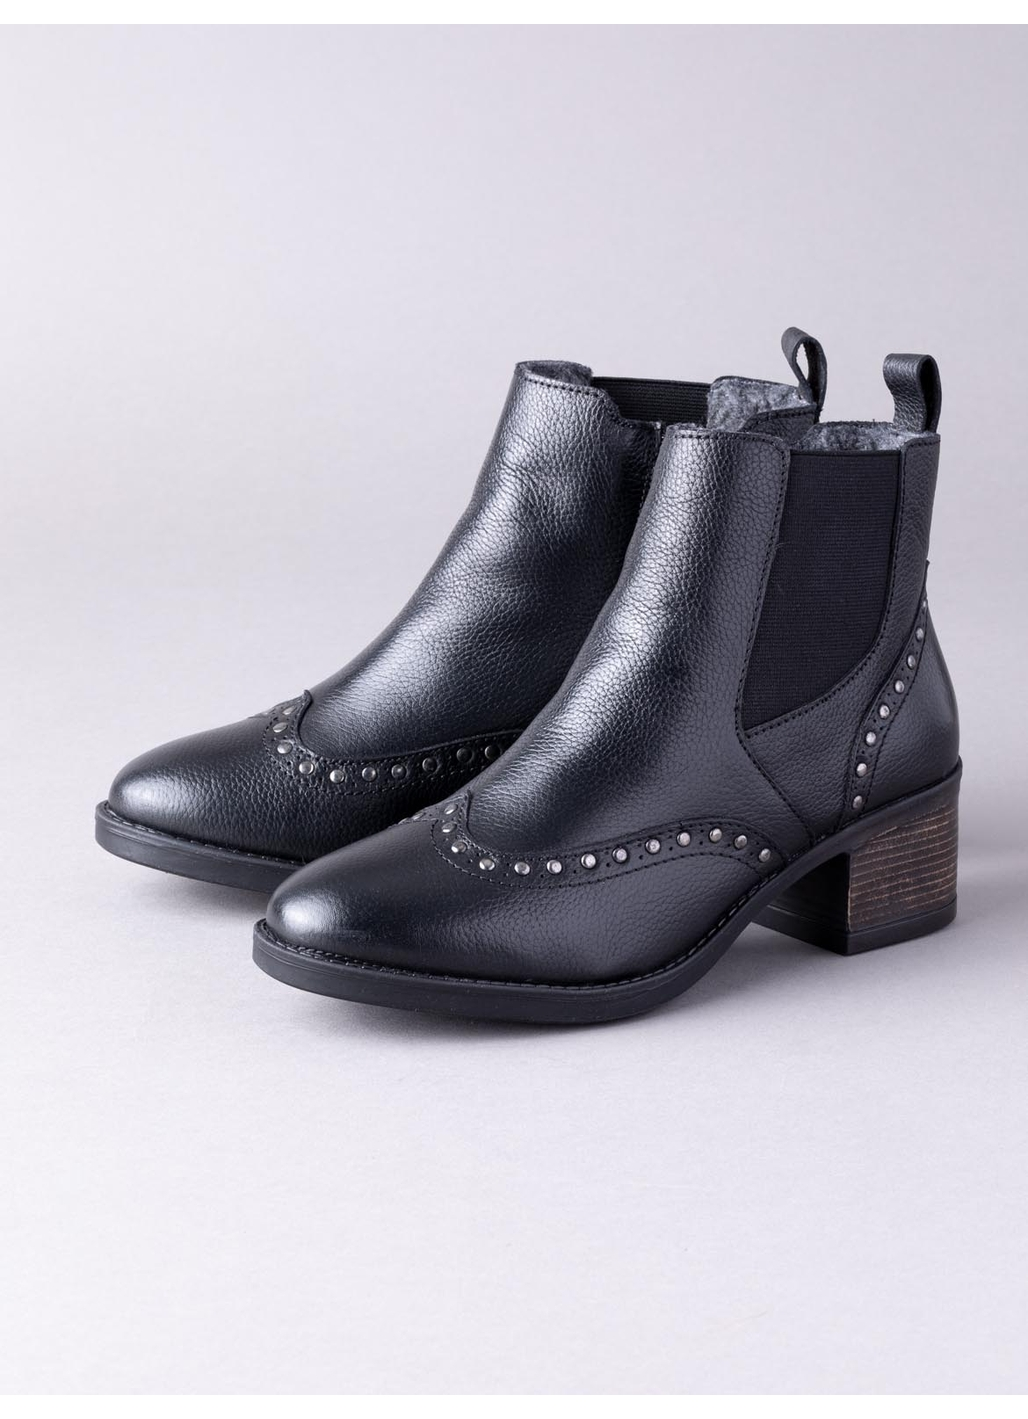 Lotus Lucinda Leather Chelsea Boots in Black